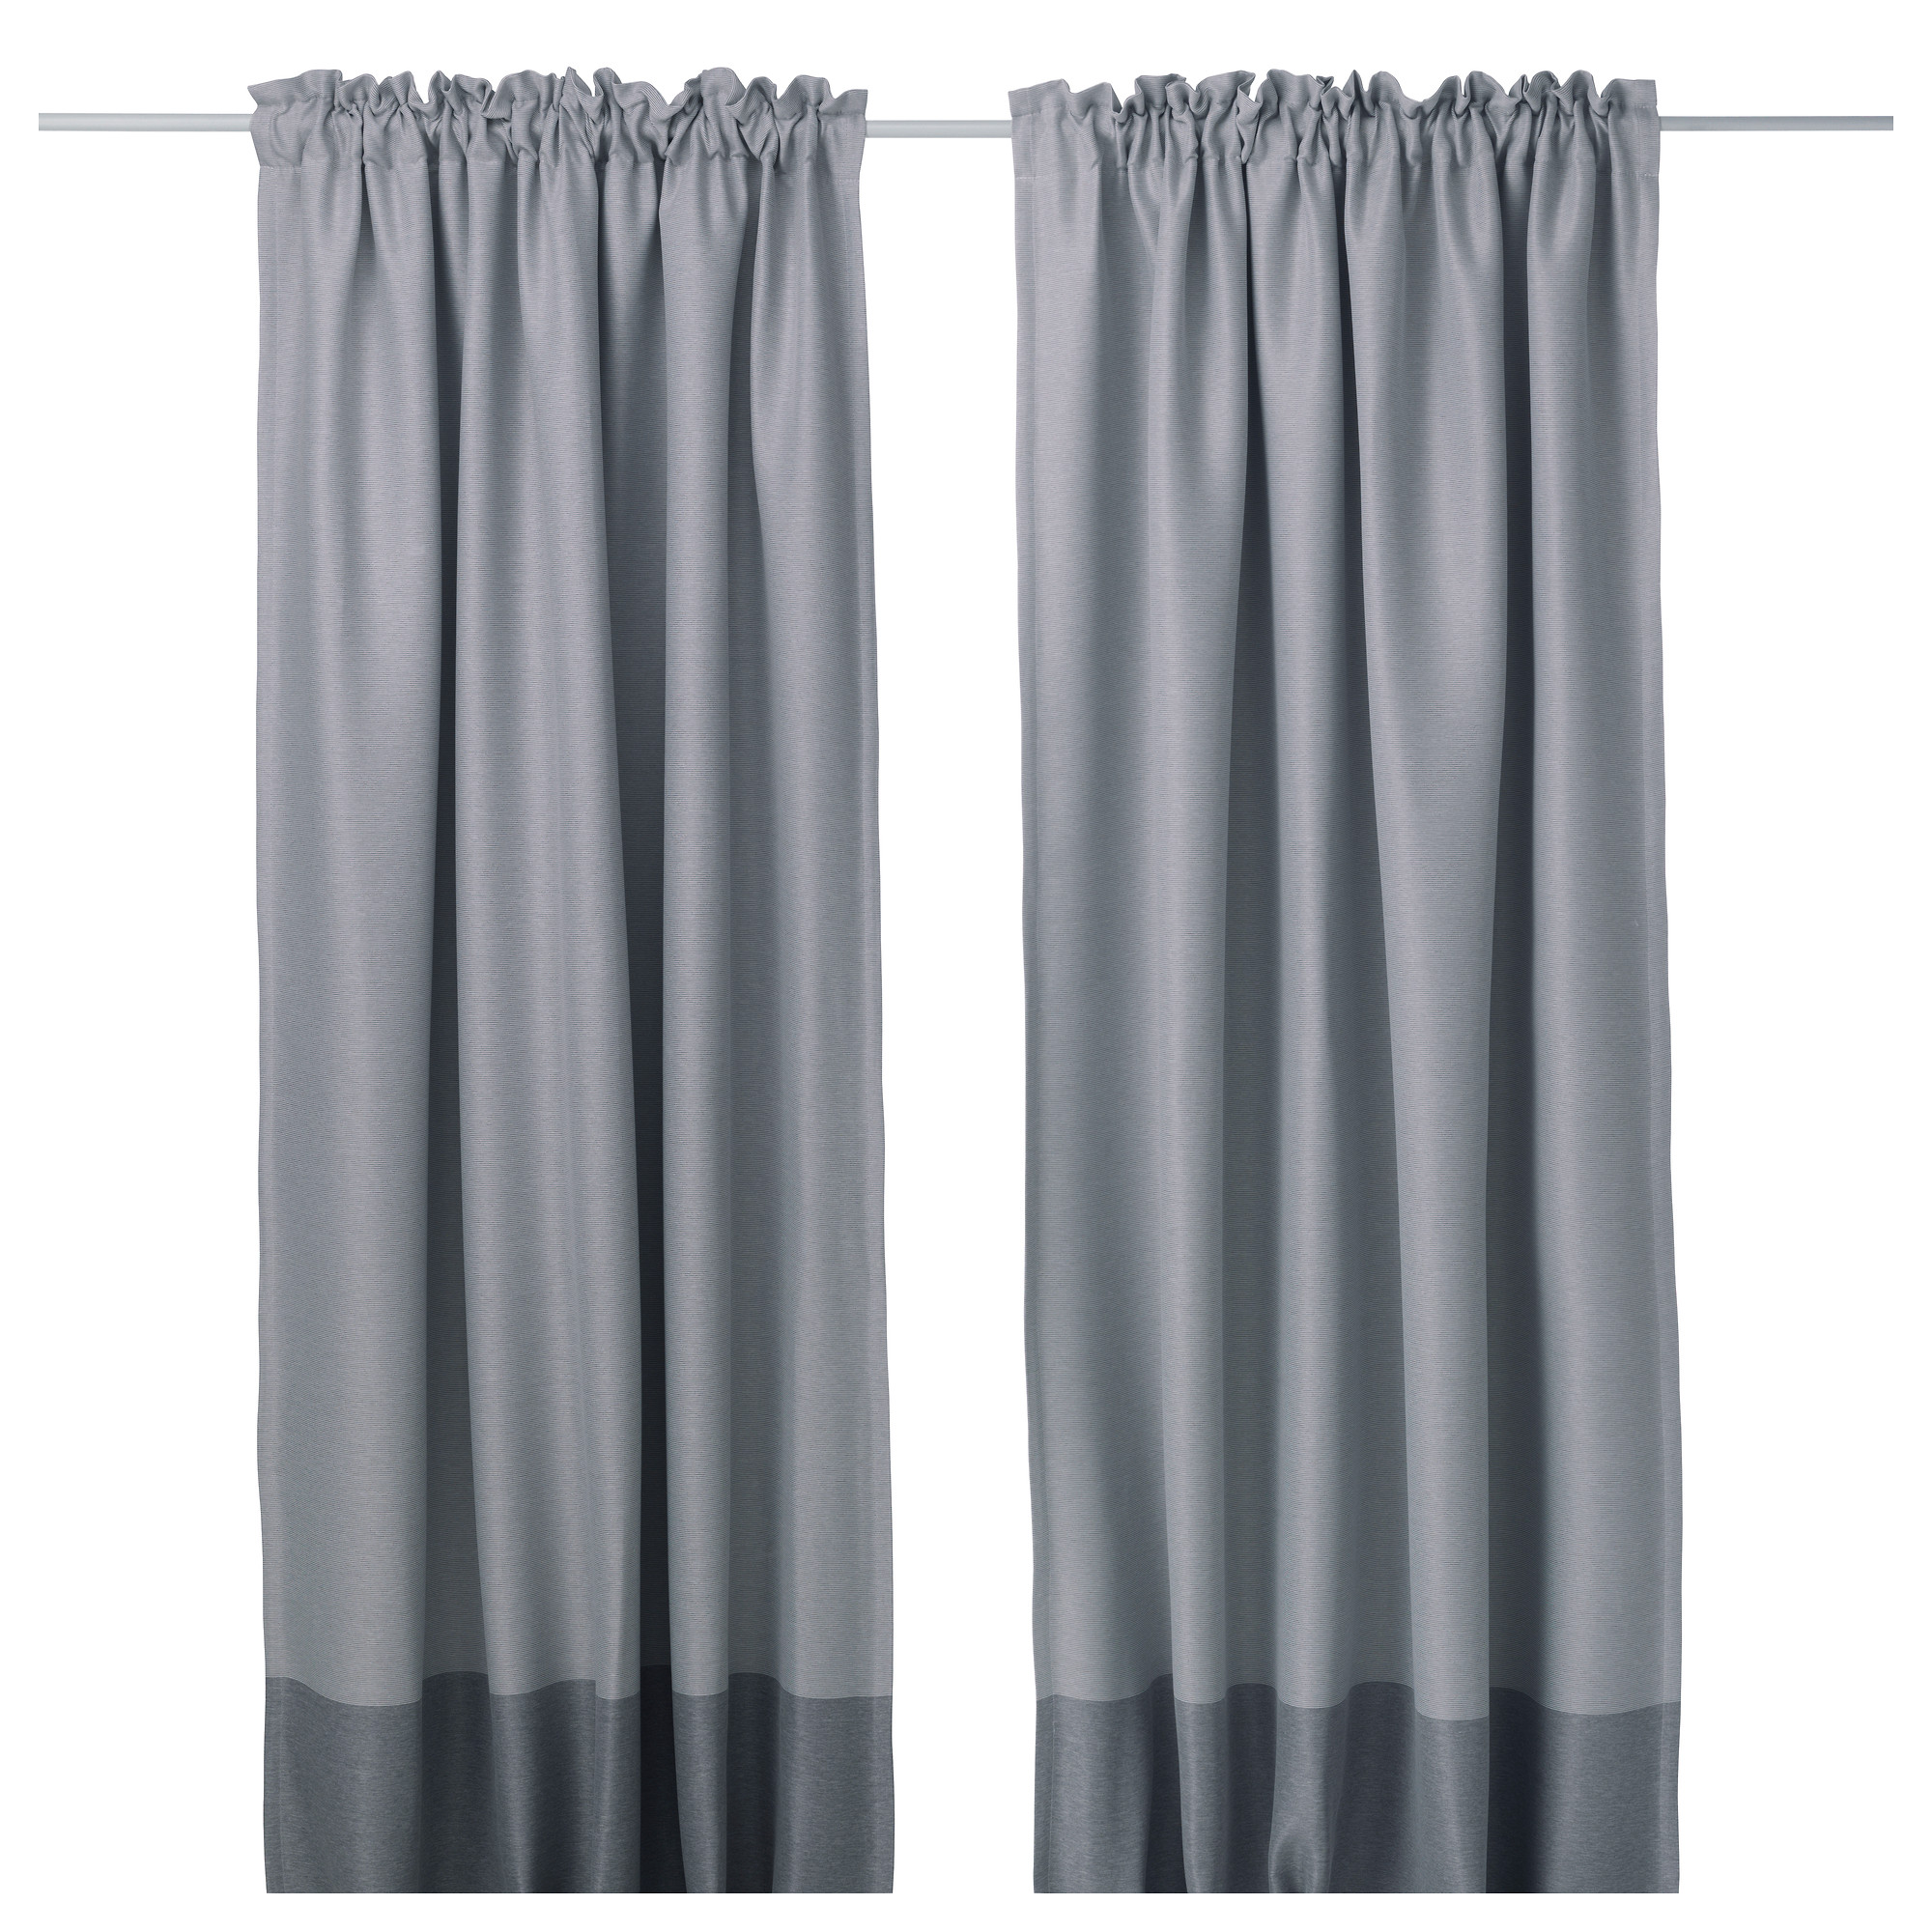 MARJUN Blackout Curtains, 1 Pair   IKEA